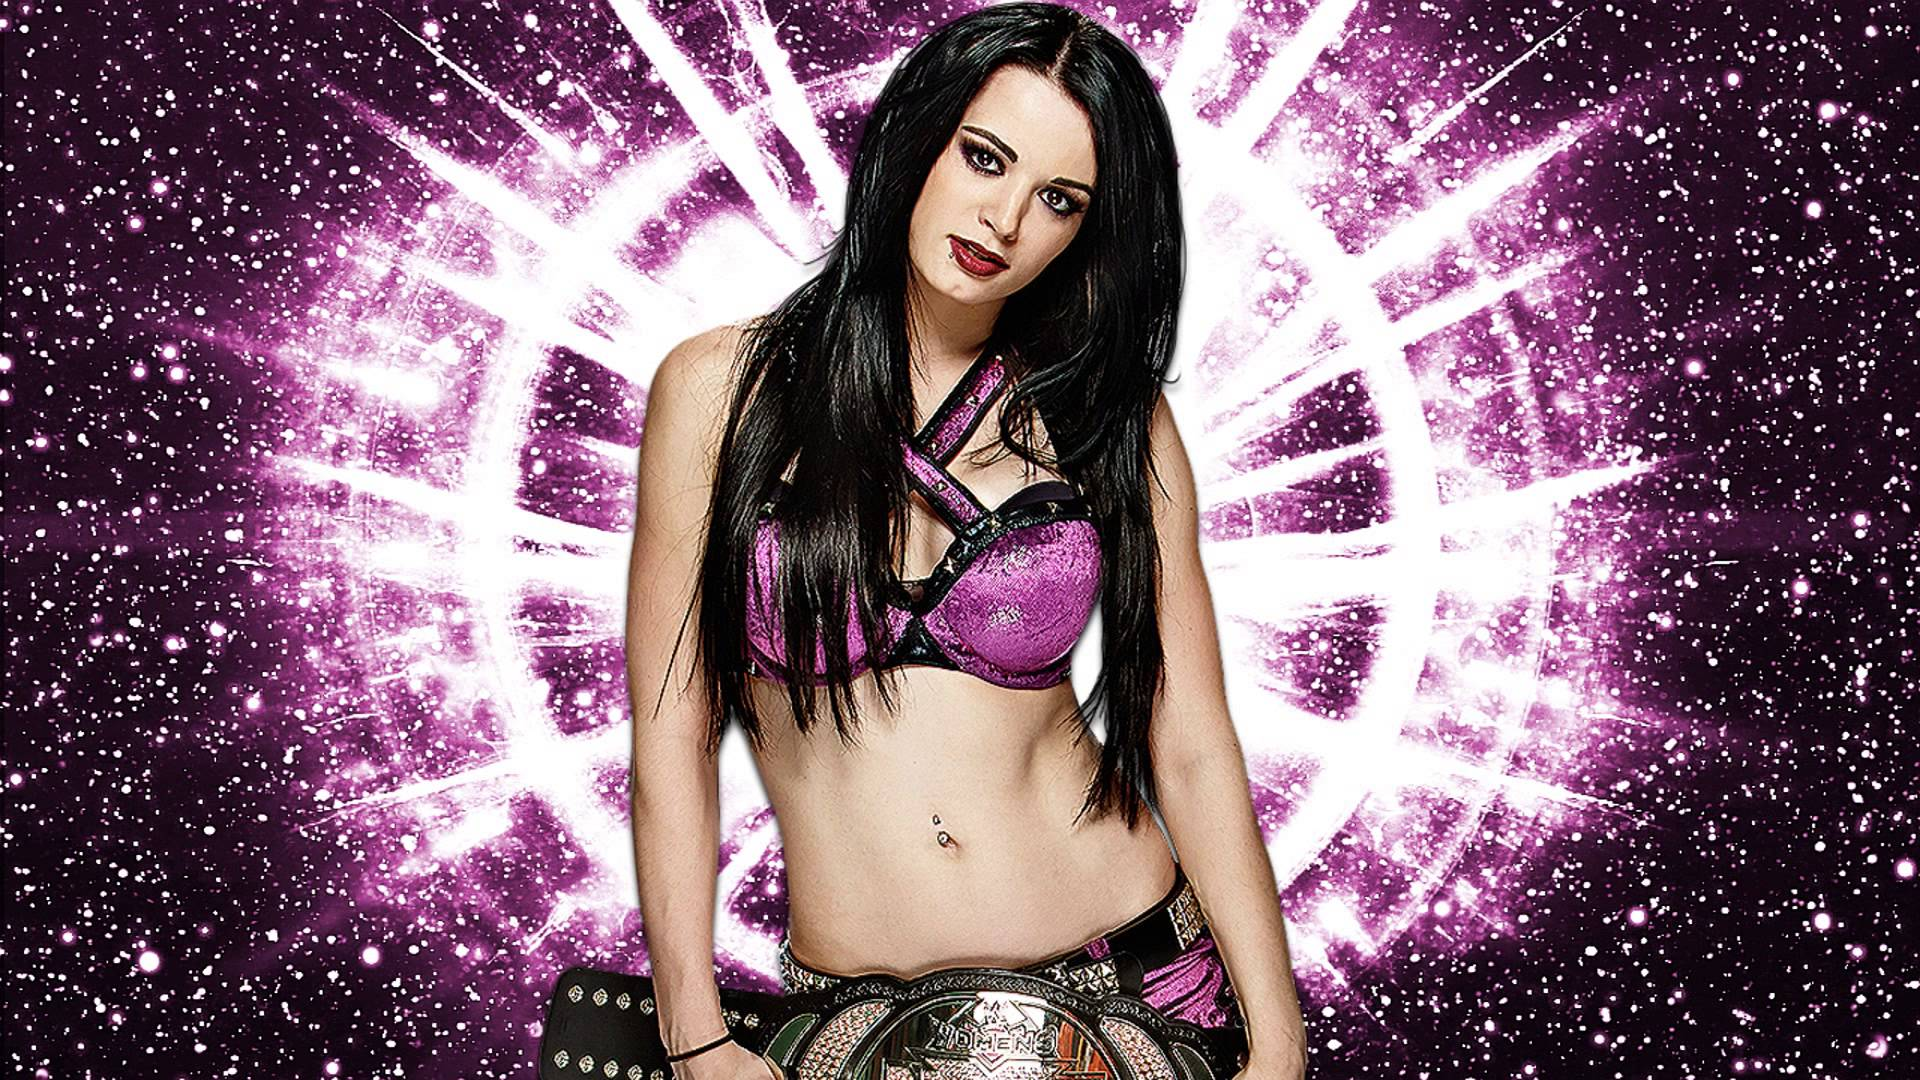 Wwe Superstars Images Paige HD Wallpaper And Background Photos